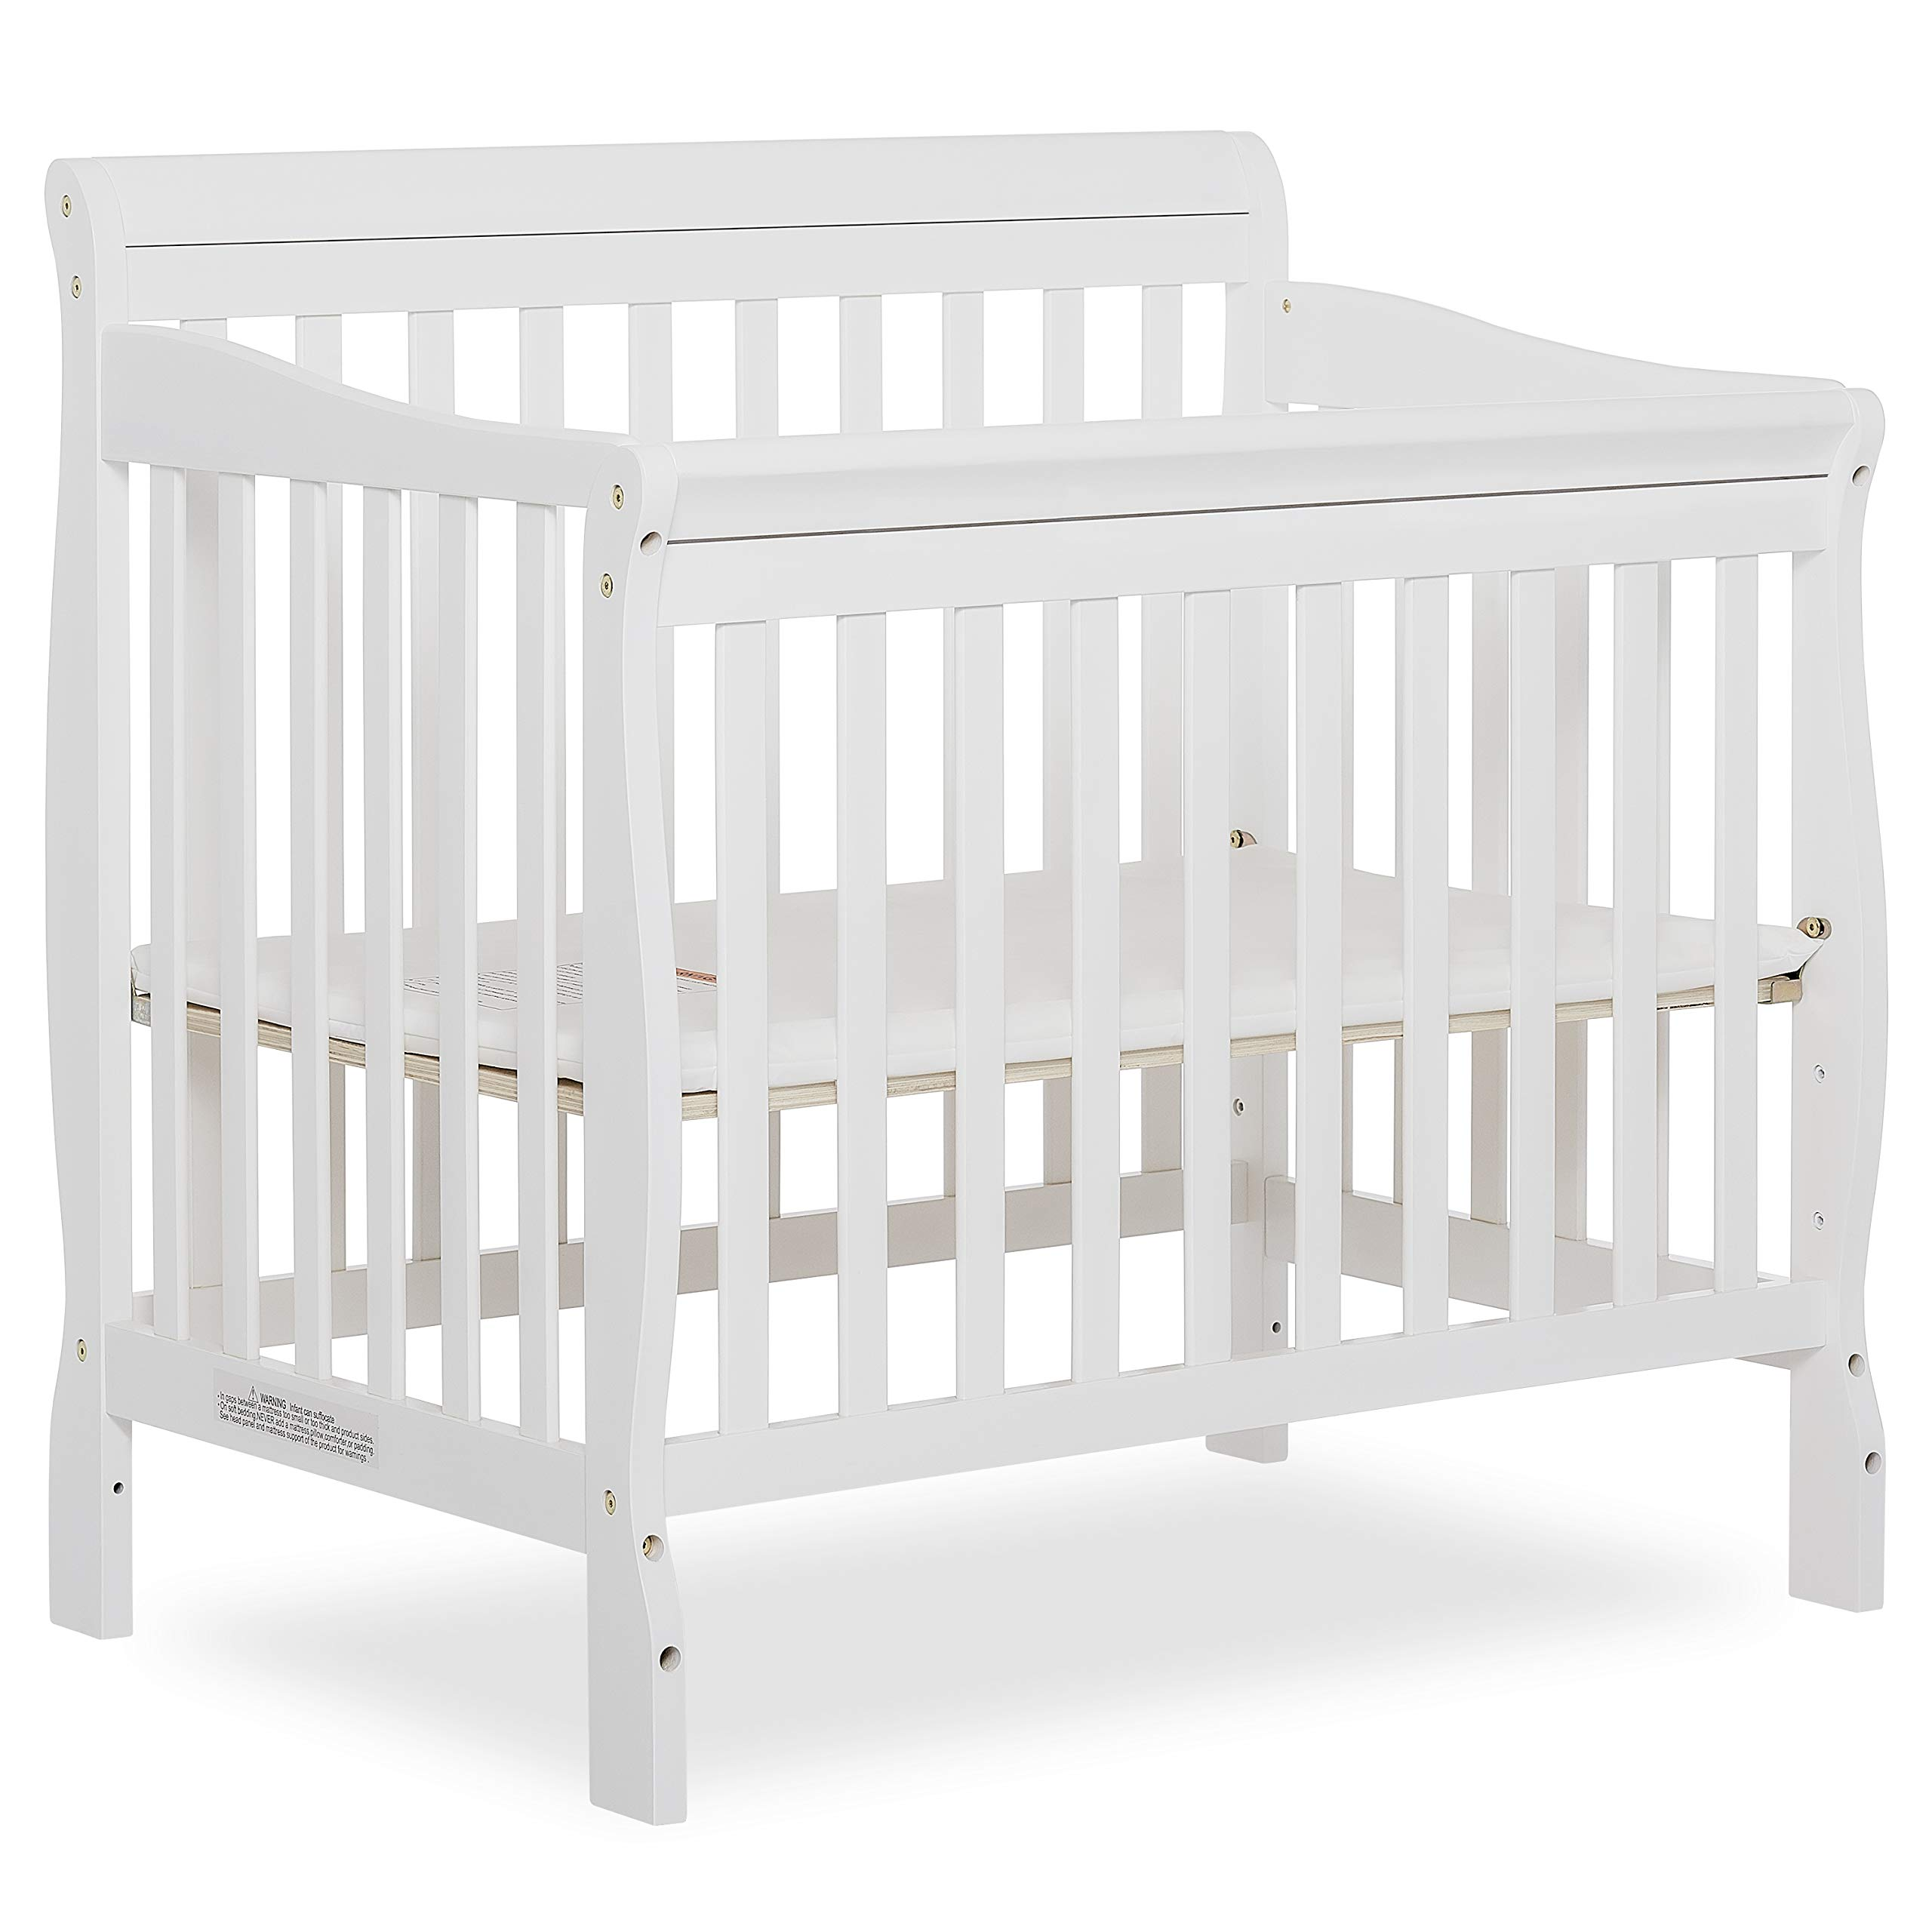 Nursery Furniture Creative Portable Baby Bed High Standard In Quality And Hygiene Bassinets & Cradles